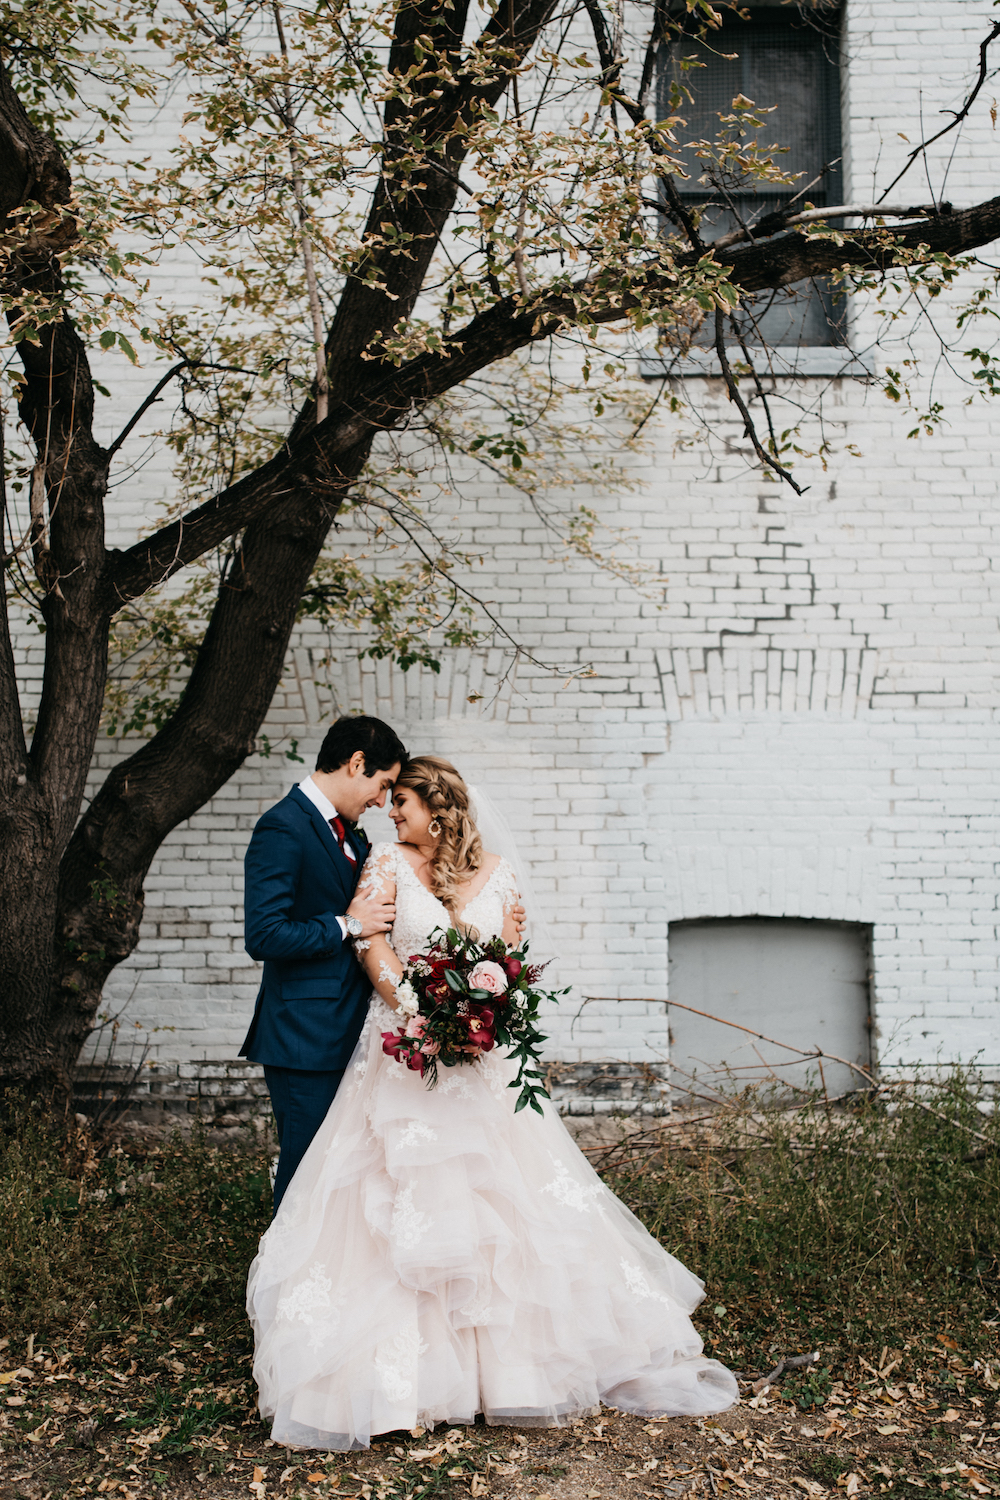 Fall Wedding at Hawthorn Estates - Winnipeg's Top Wedding Florist